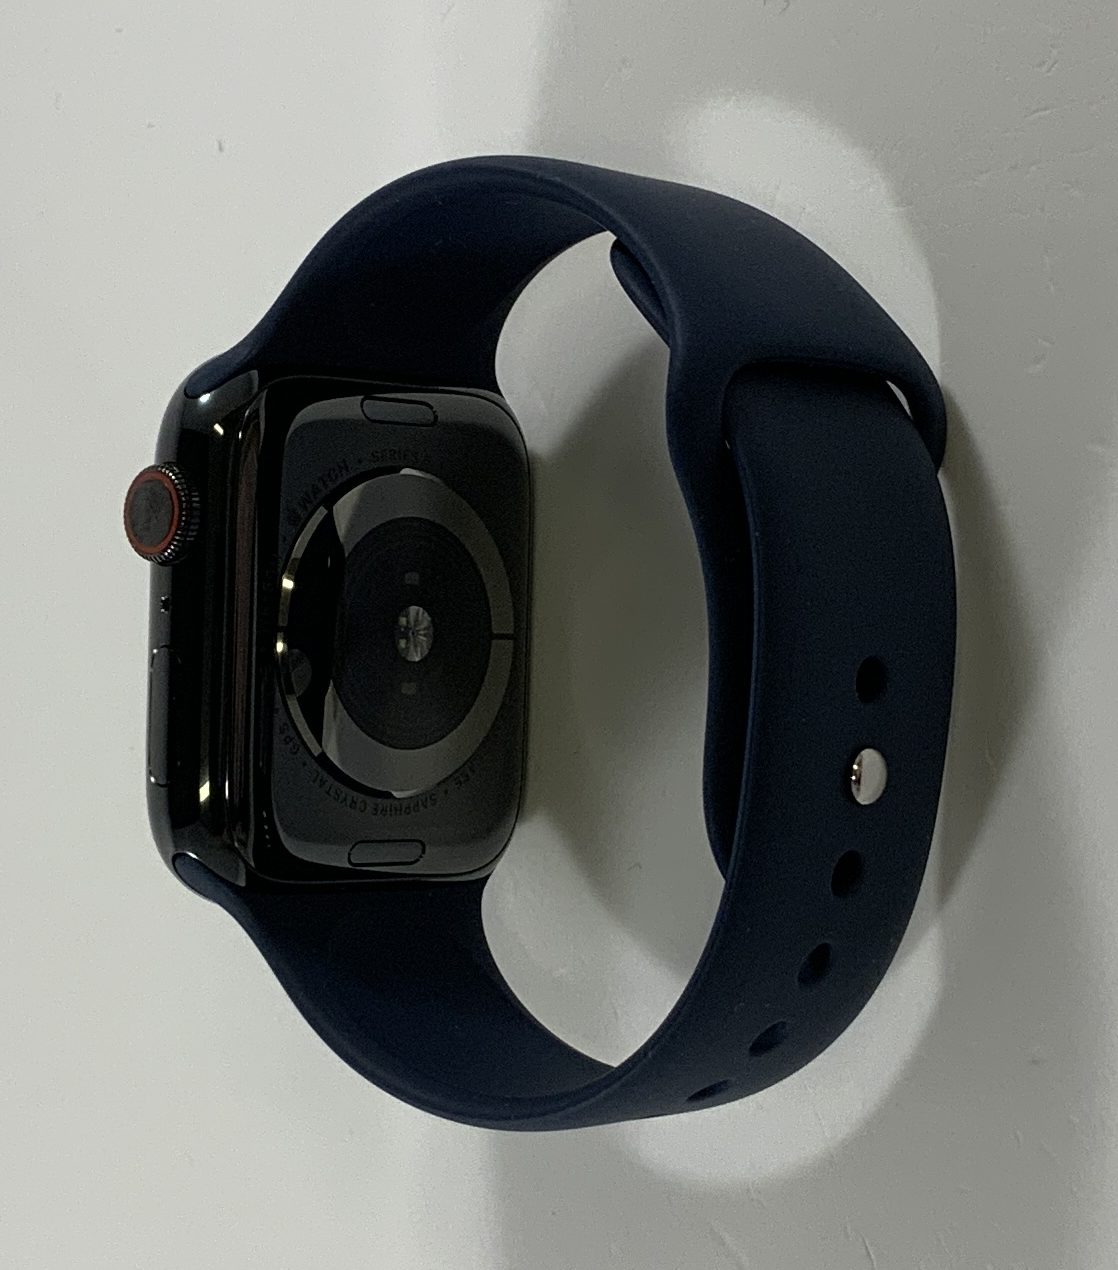 Watch Series 5 Steel Cellular (44mm), Space Black, image 3